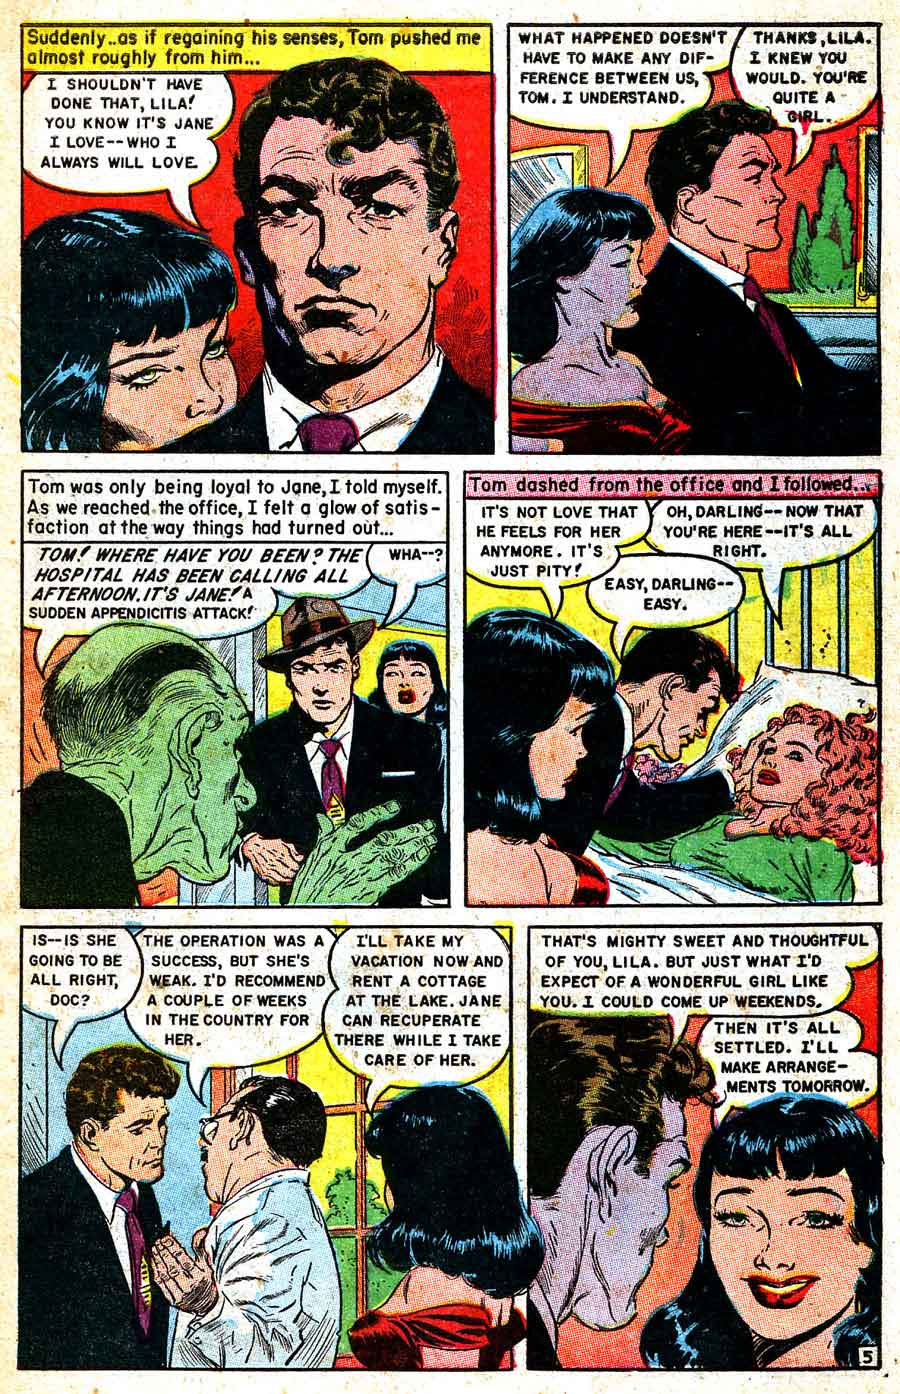 Personal Love v1 #25 golden age romance comic book page art by Frank Frazetta